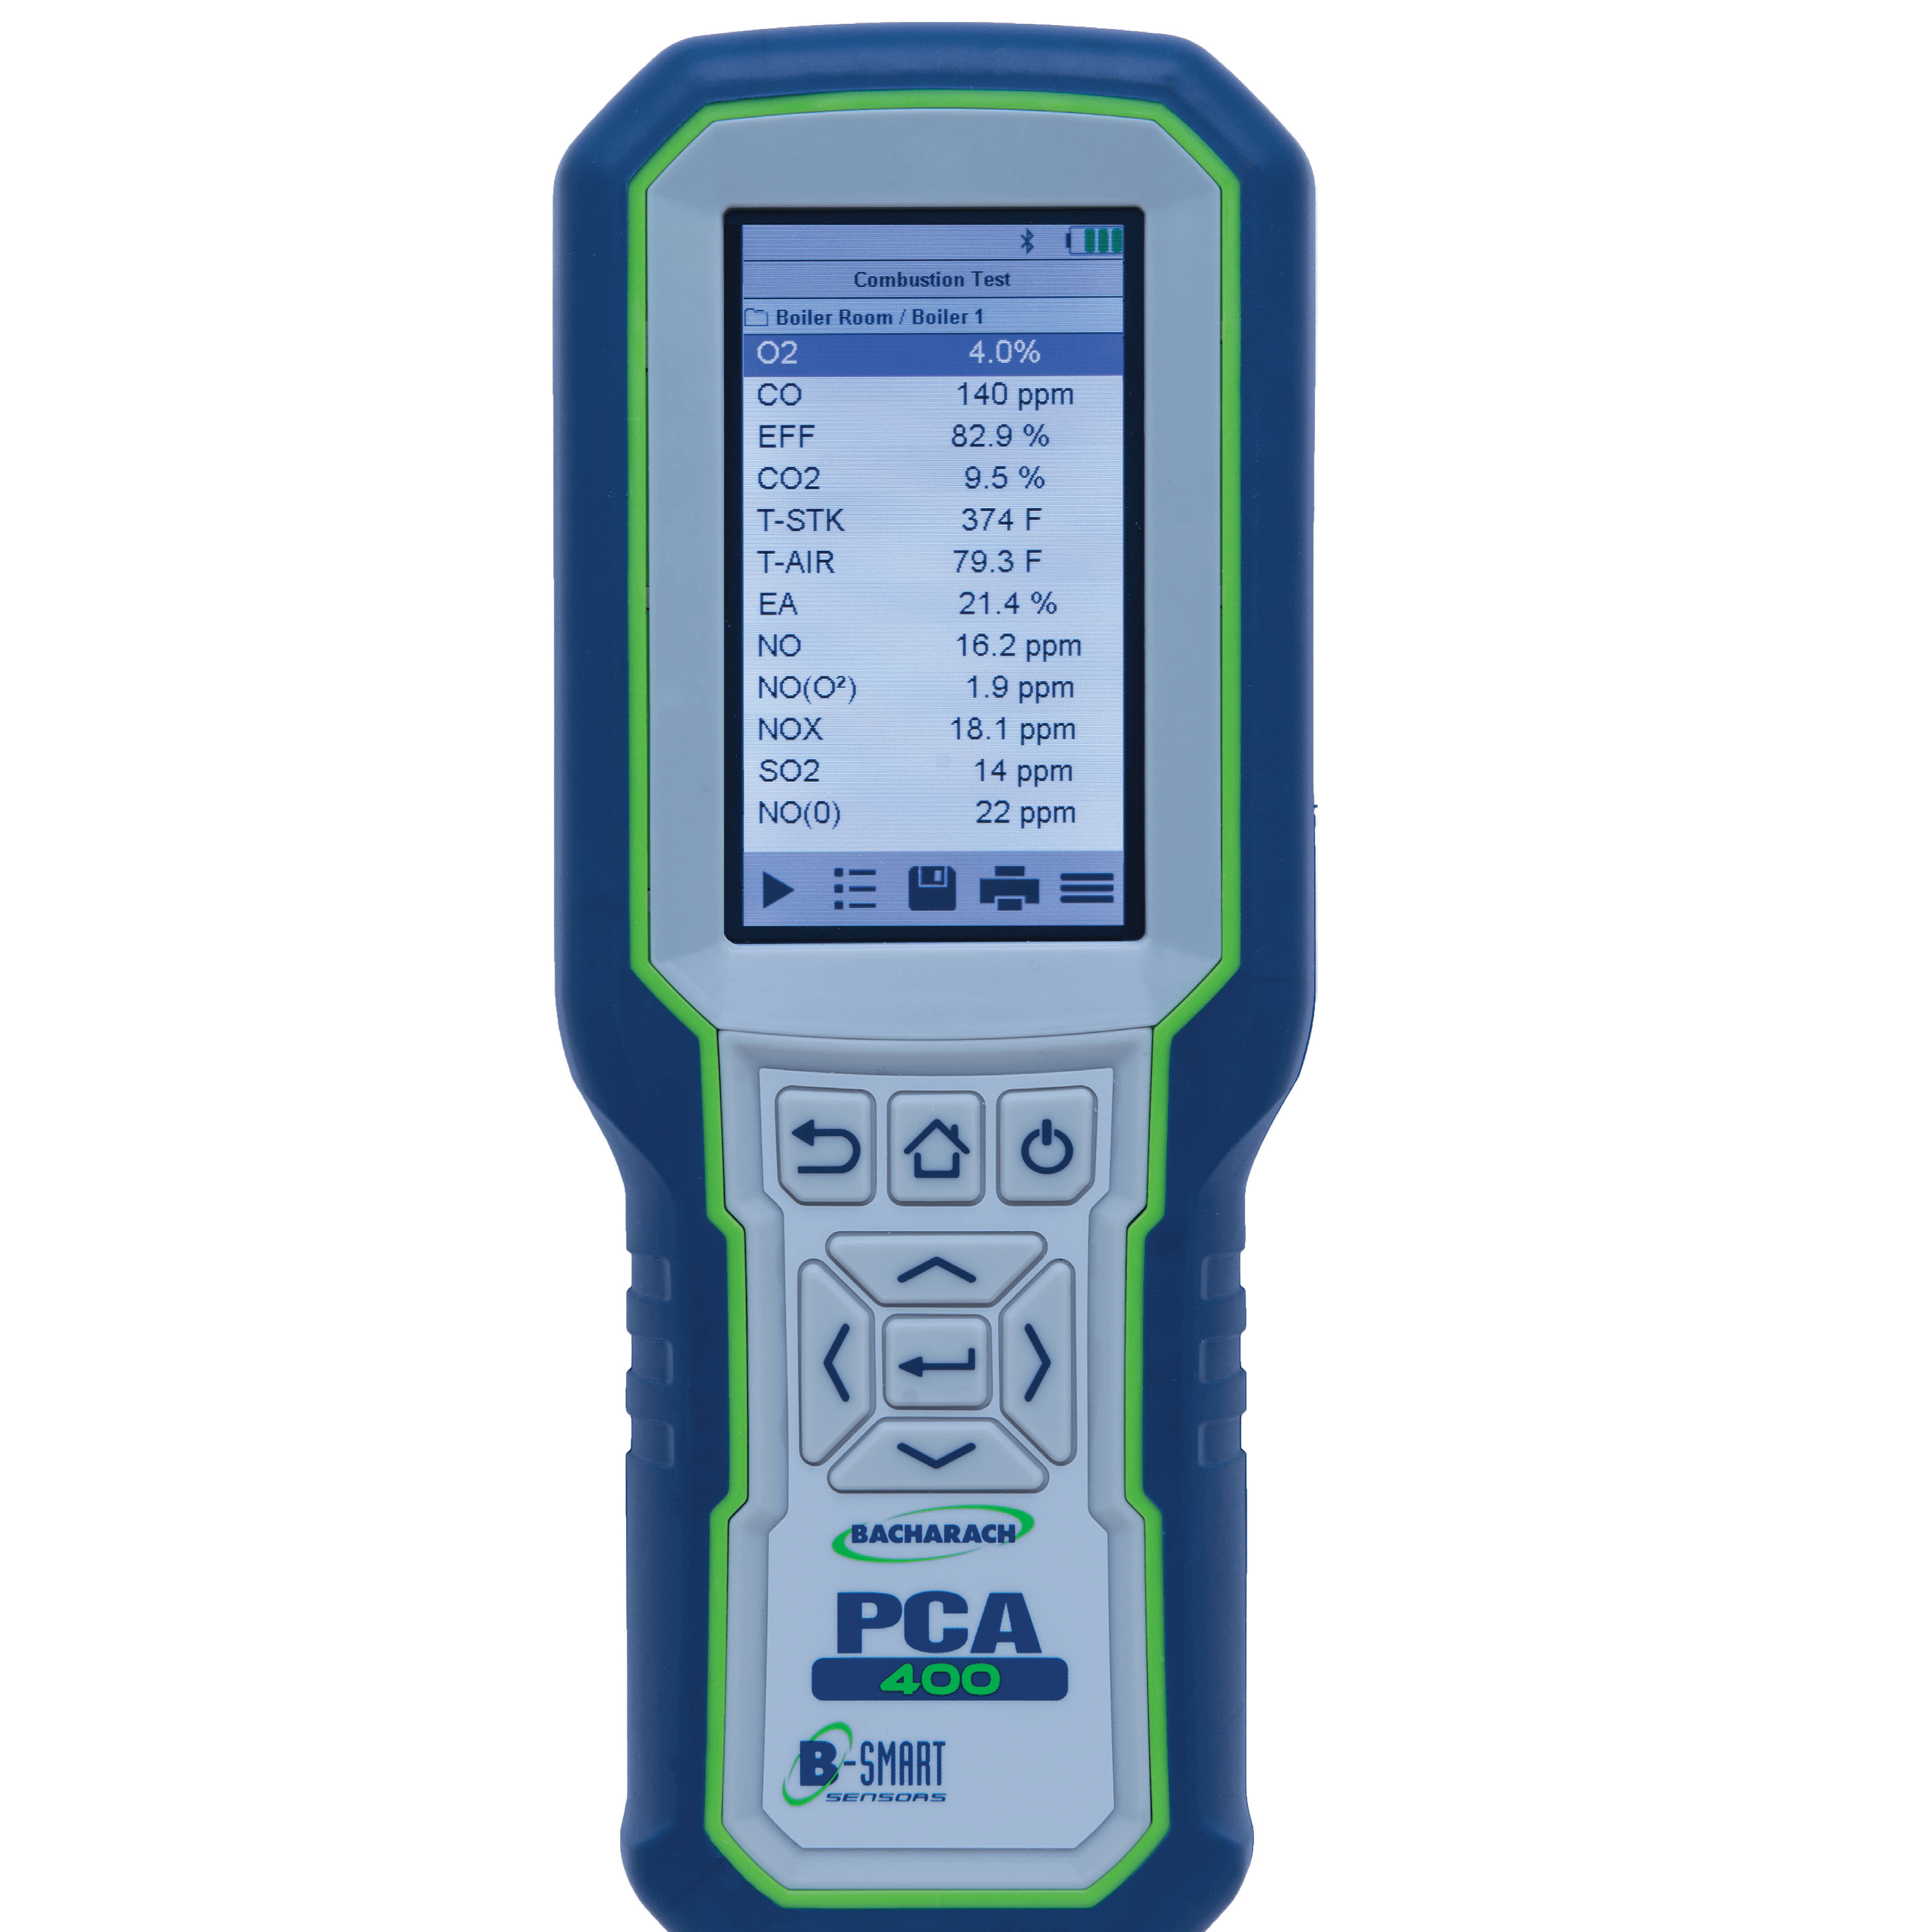 Bacharach PCA 400 Combustion and Emissions Analyzer for Commercial and Industrial Applications 2410-1112